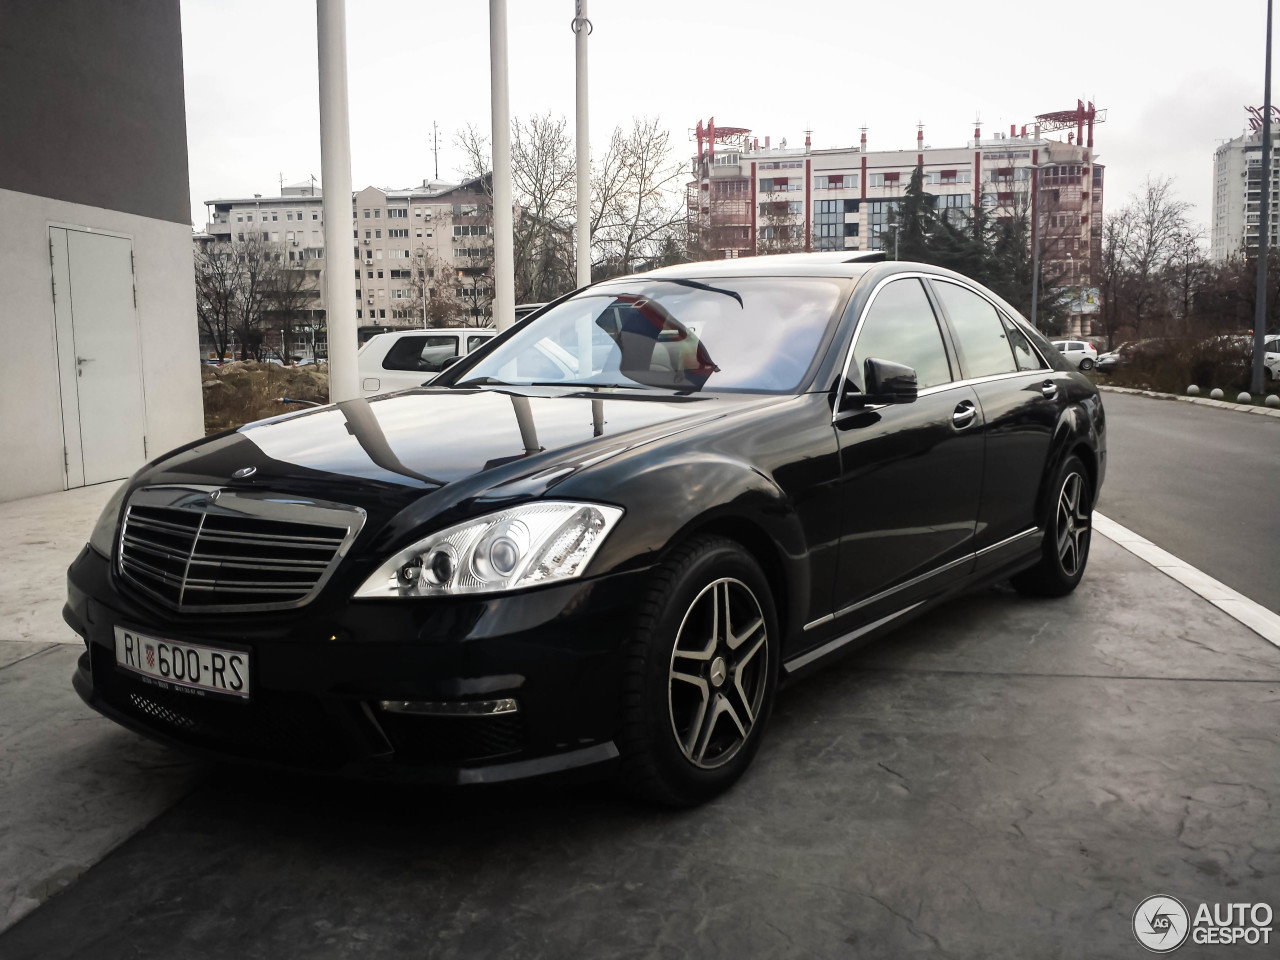 Mercedes benz s 63 amg w221 2010 25 january 2014 for Mercedes benz w221 price